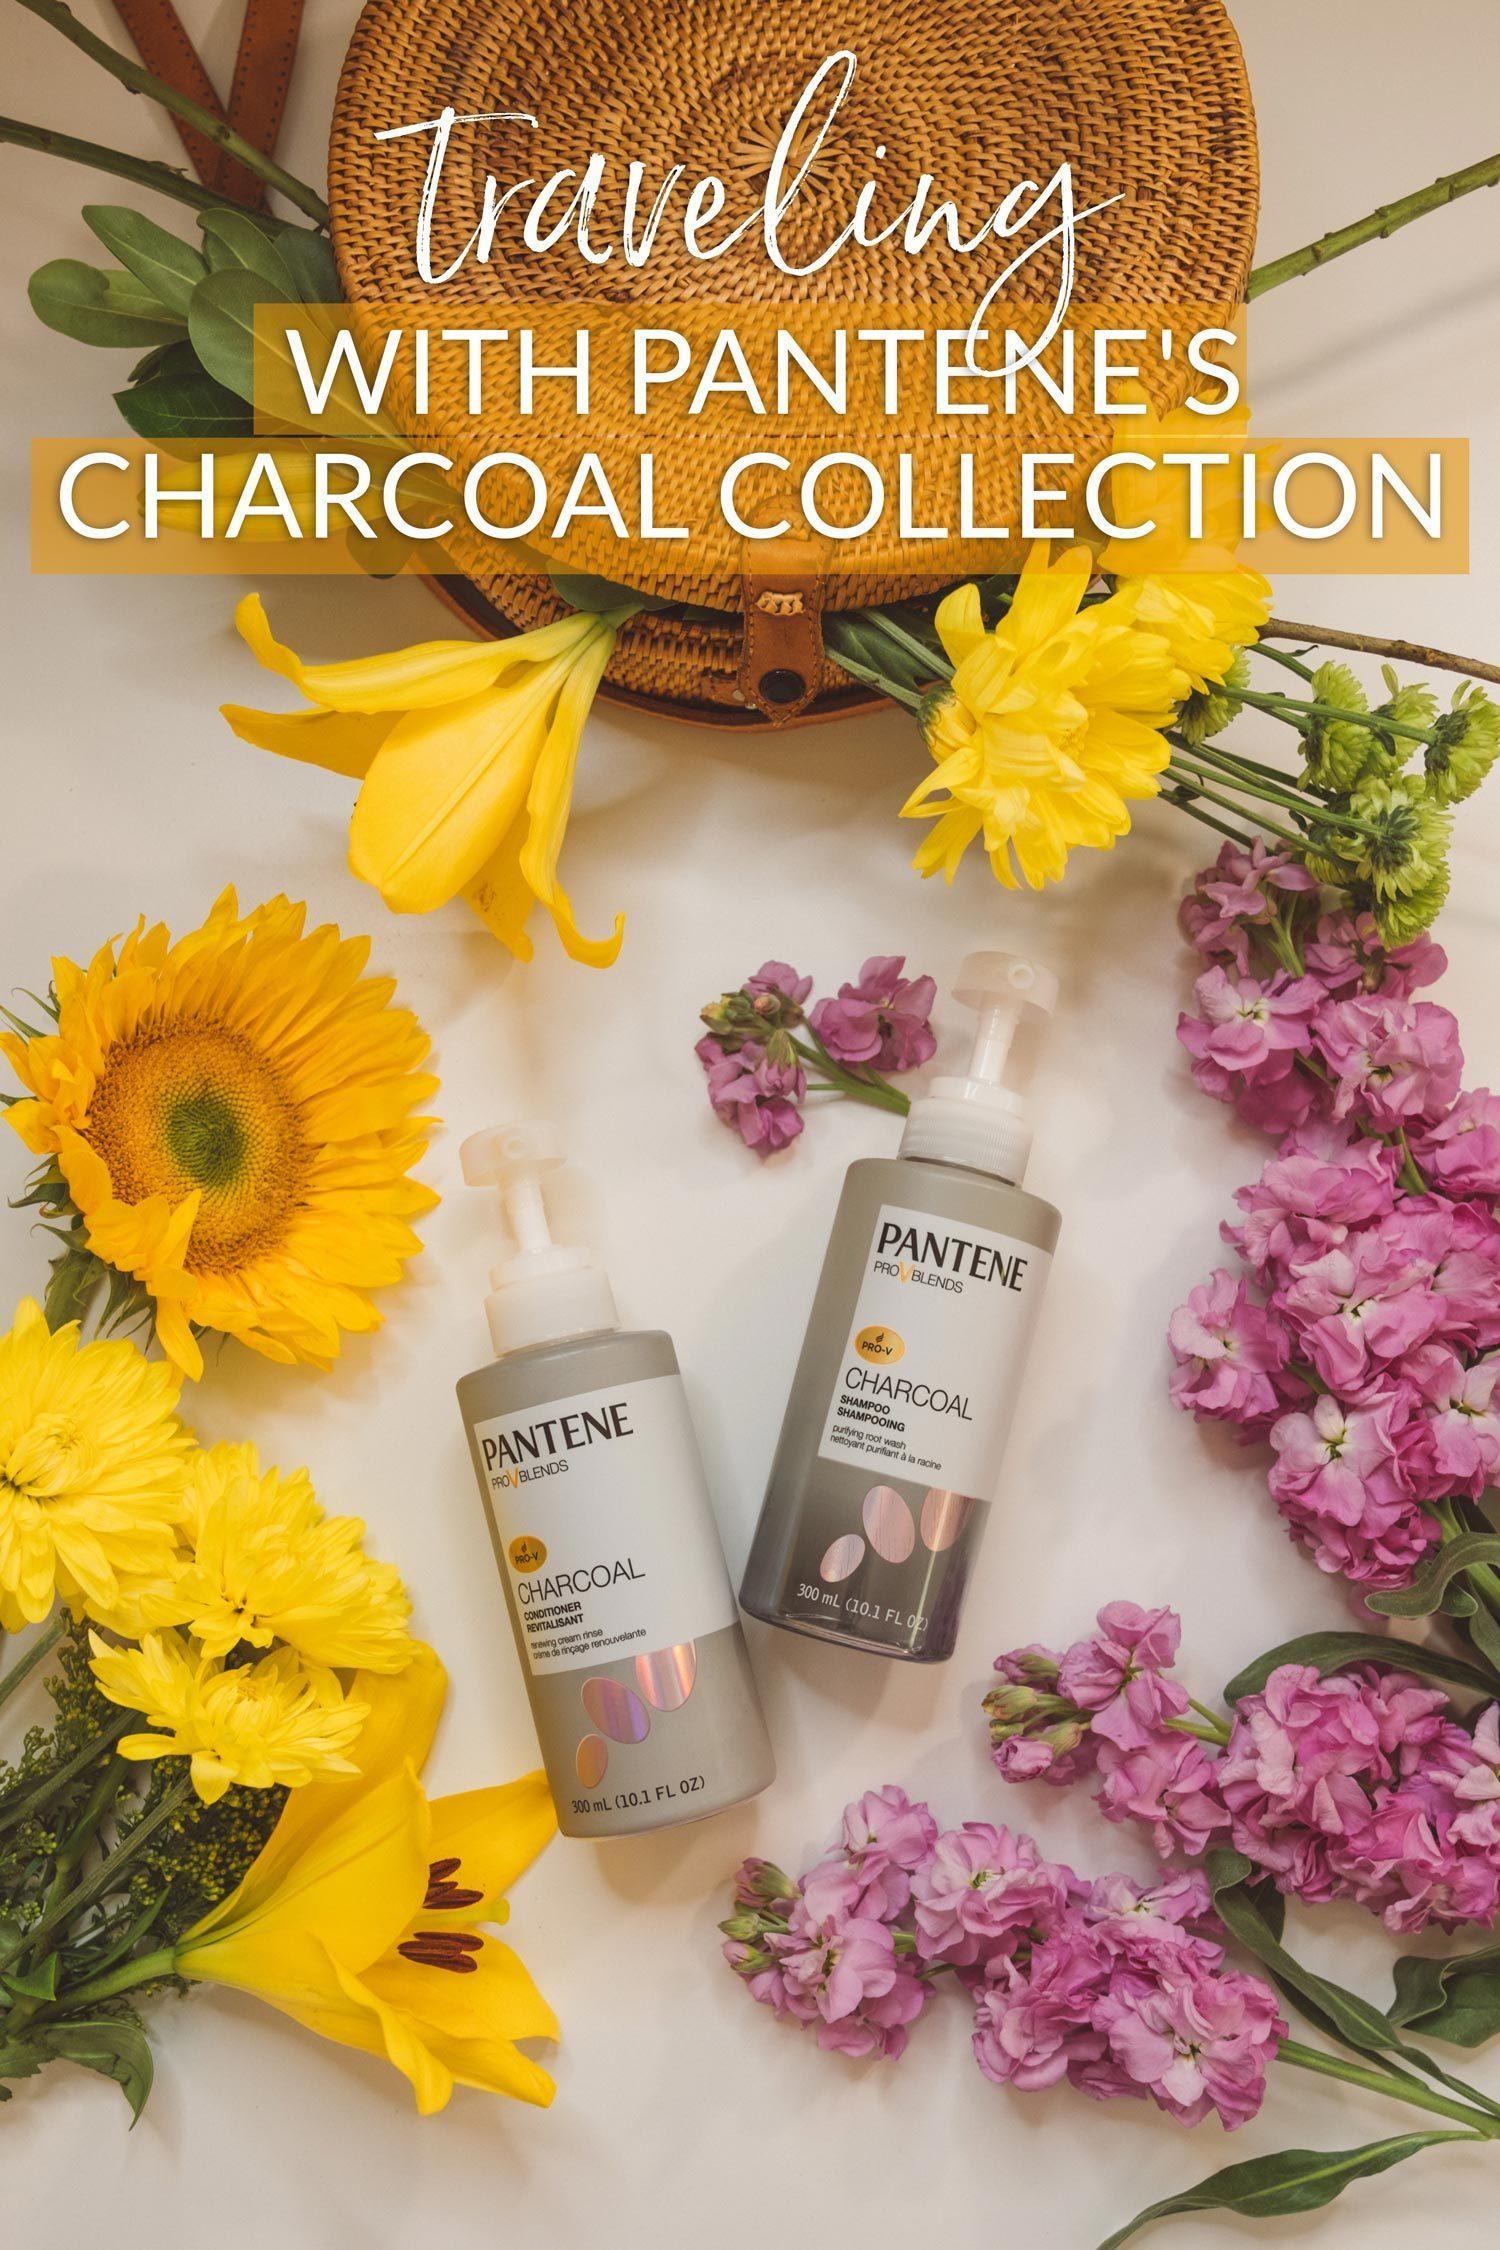 Traveling with Pantene's Charcoal Collection